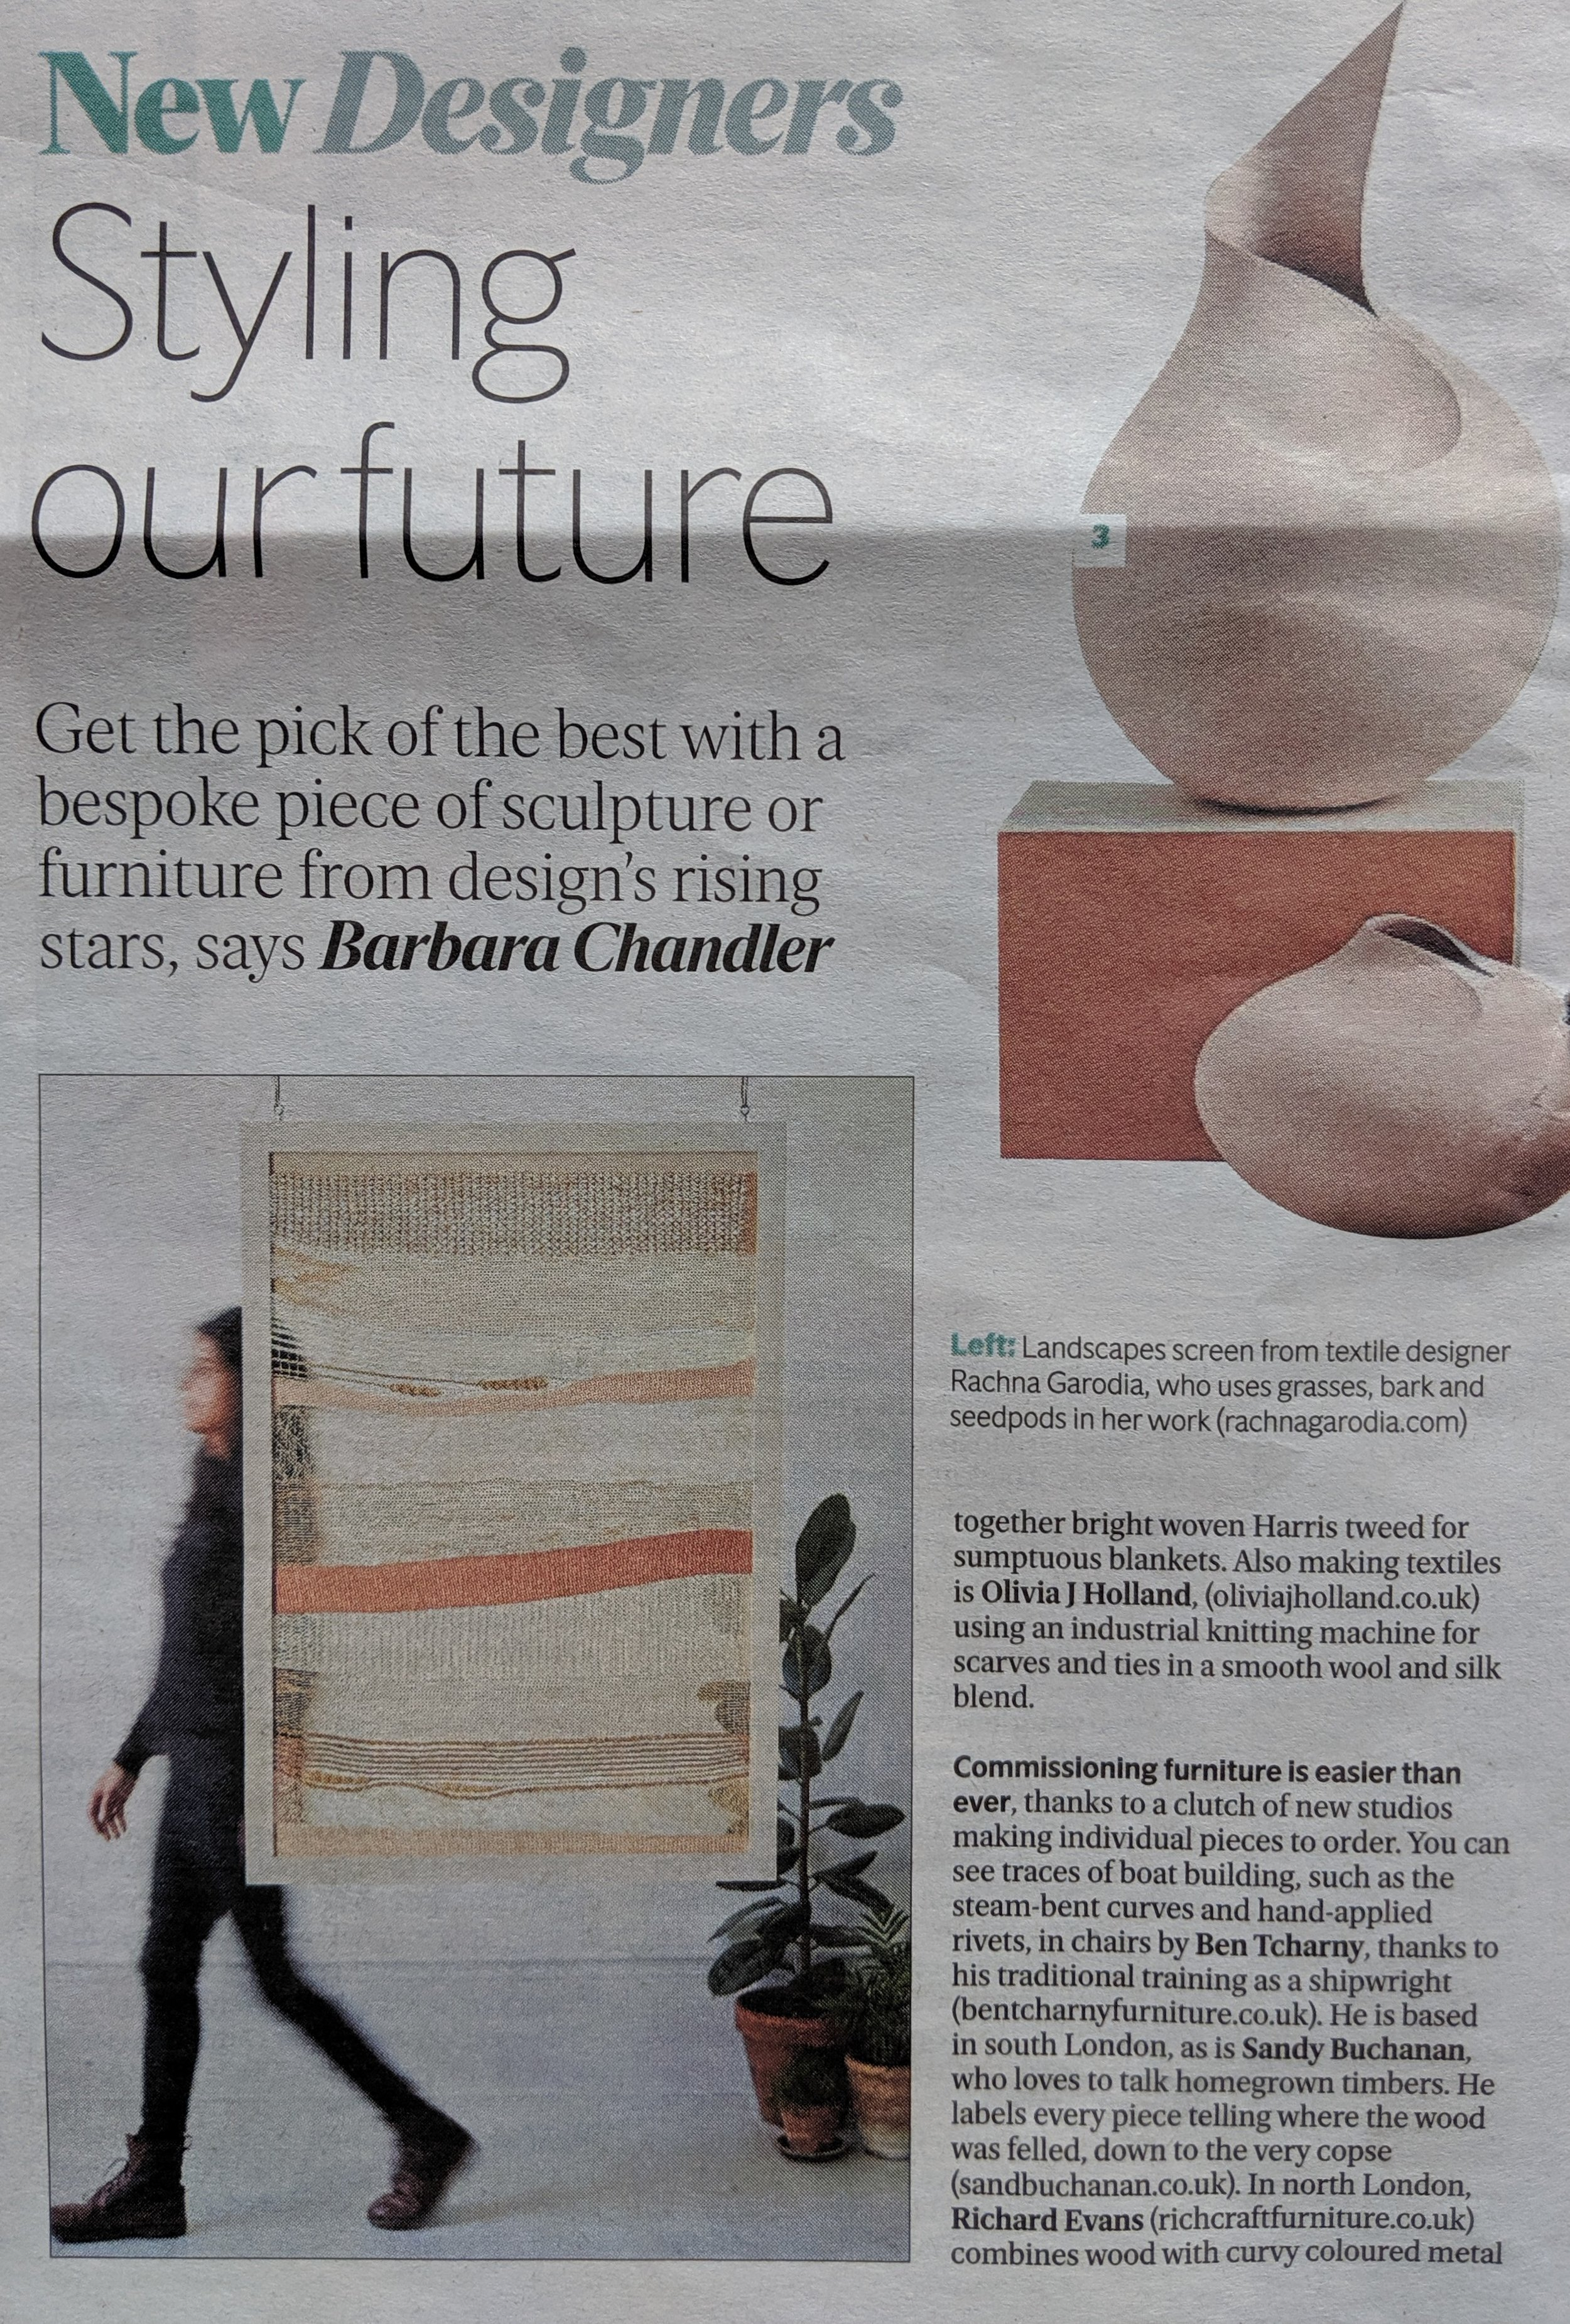 Featured in  The Evening Standard  26.09.19, 'Design's rising stars'.